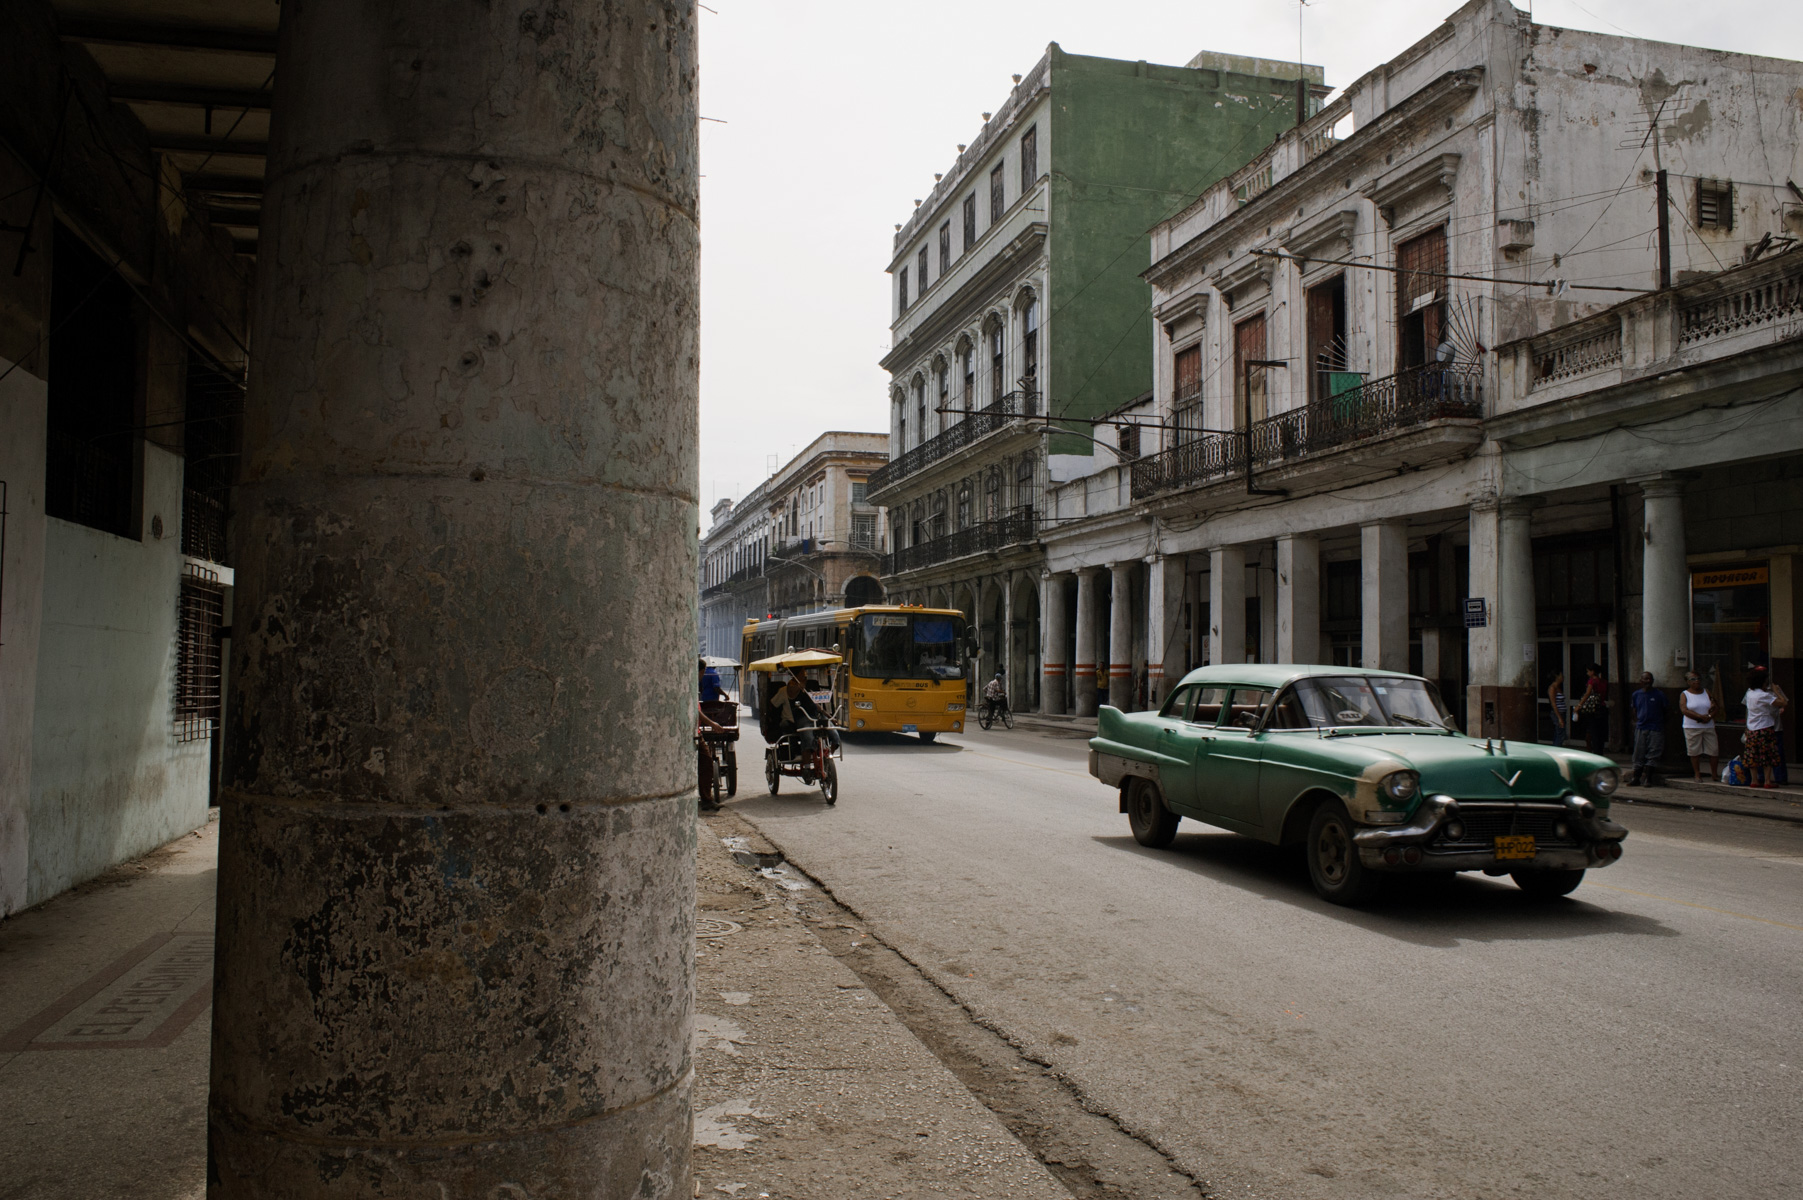 wojtek-jakubiec-photographer-montreal-cuba-havana-street-documentary-green-car-green-wall-.jpg